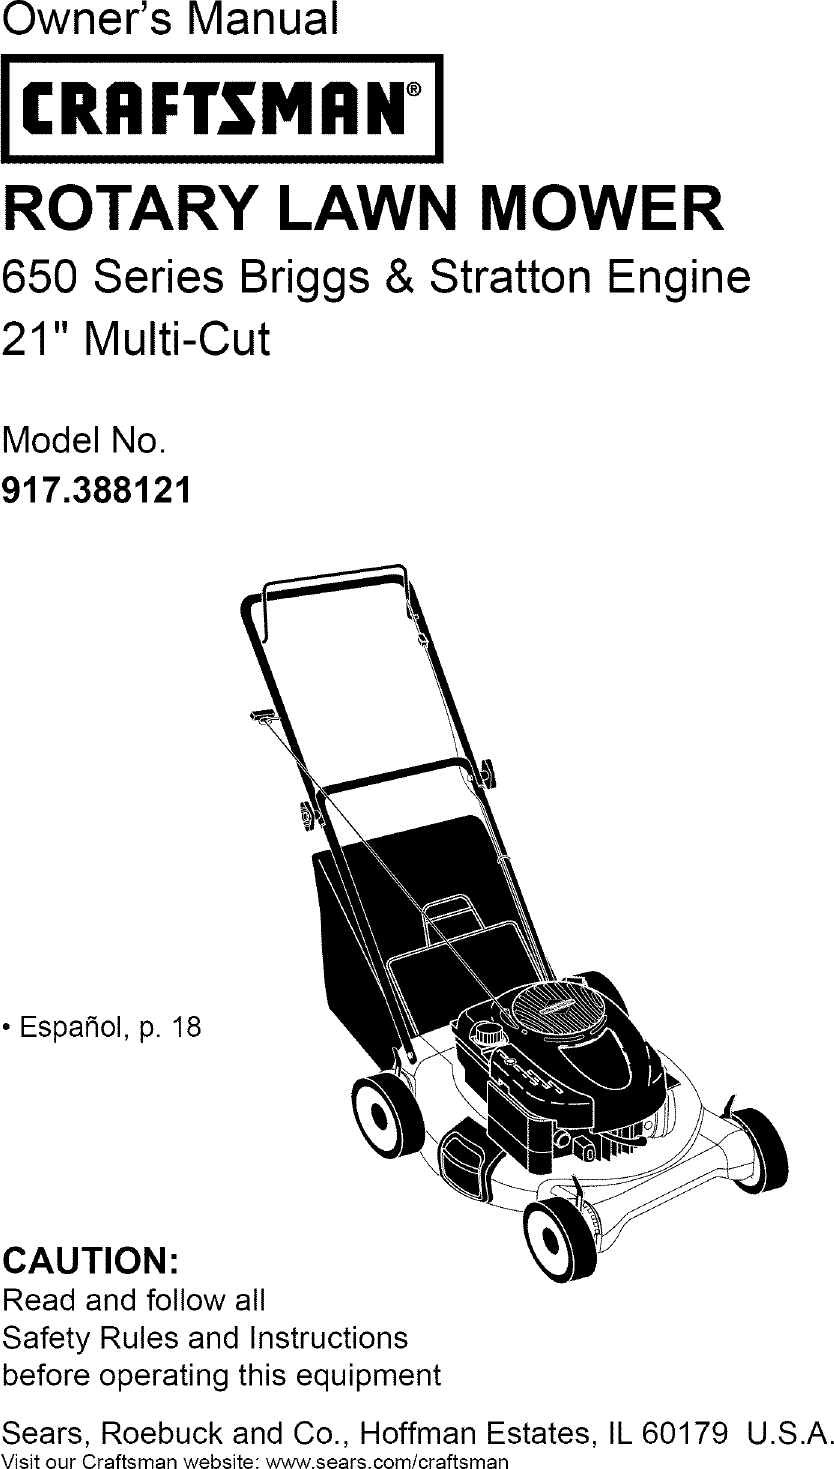 craftsman 917388121 user manual lawn mower manuals and guides l0702285